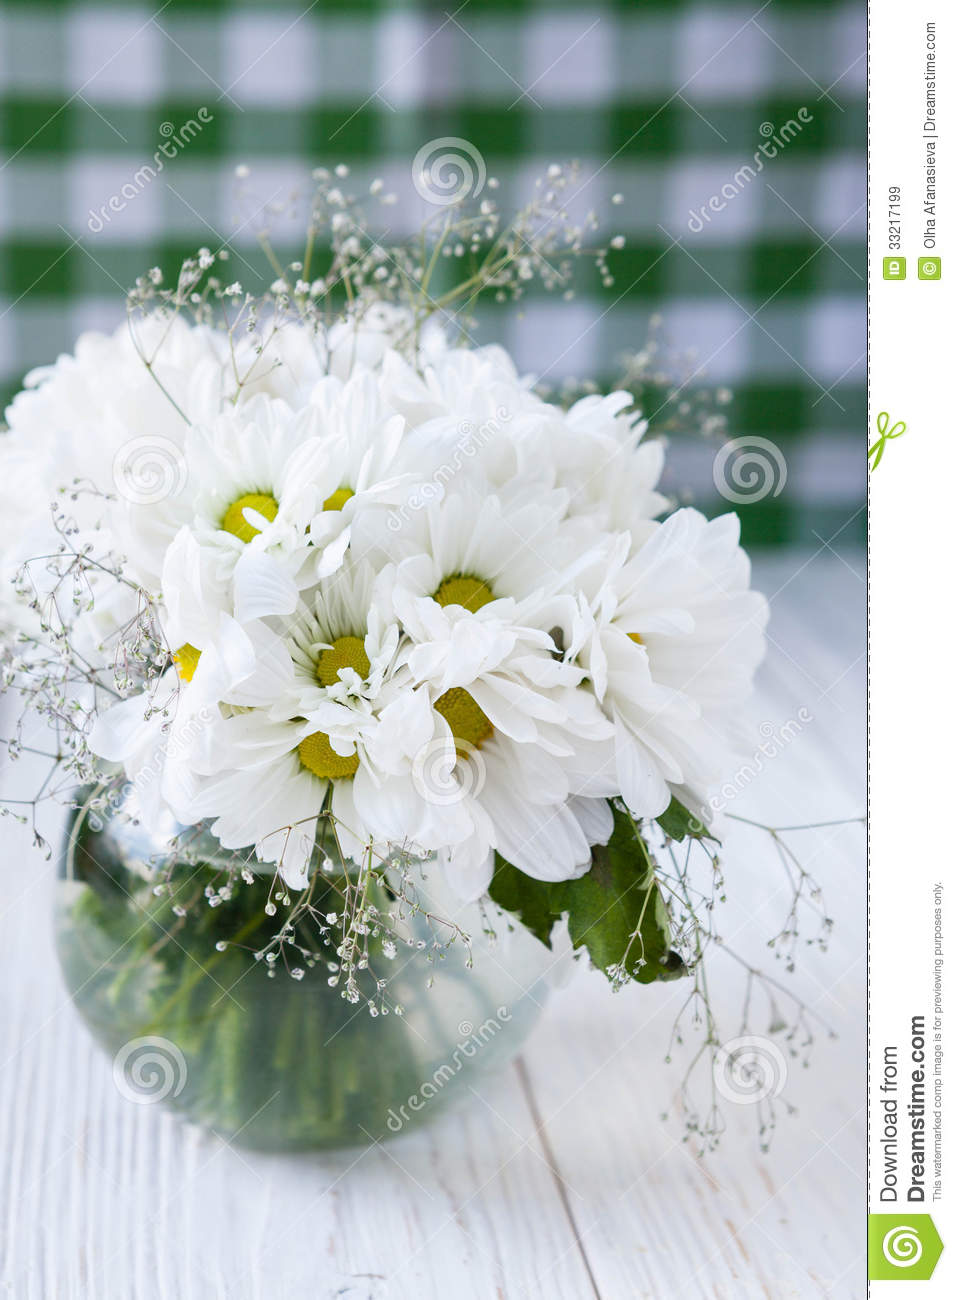 Bouquet Of White Flowers On The Kitchen Table Stock Image - Image of ...